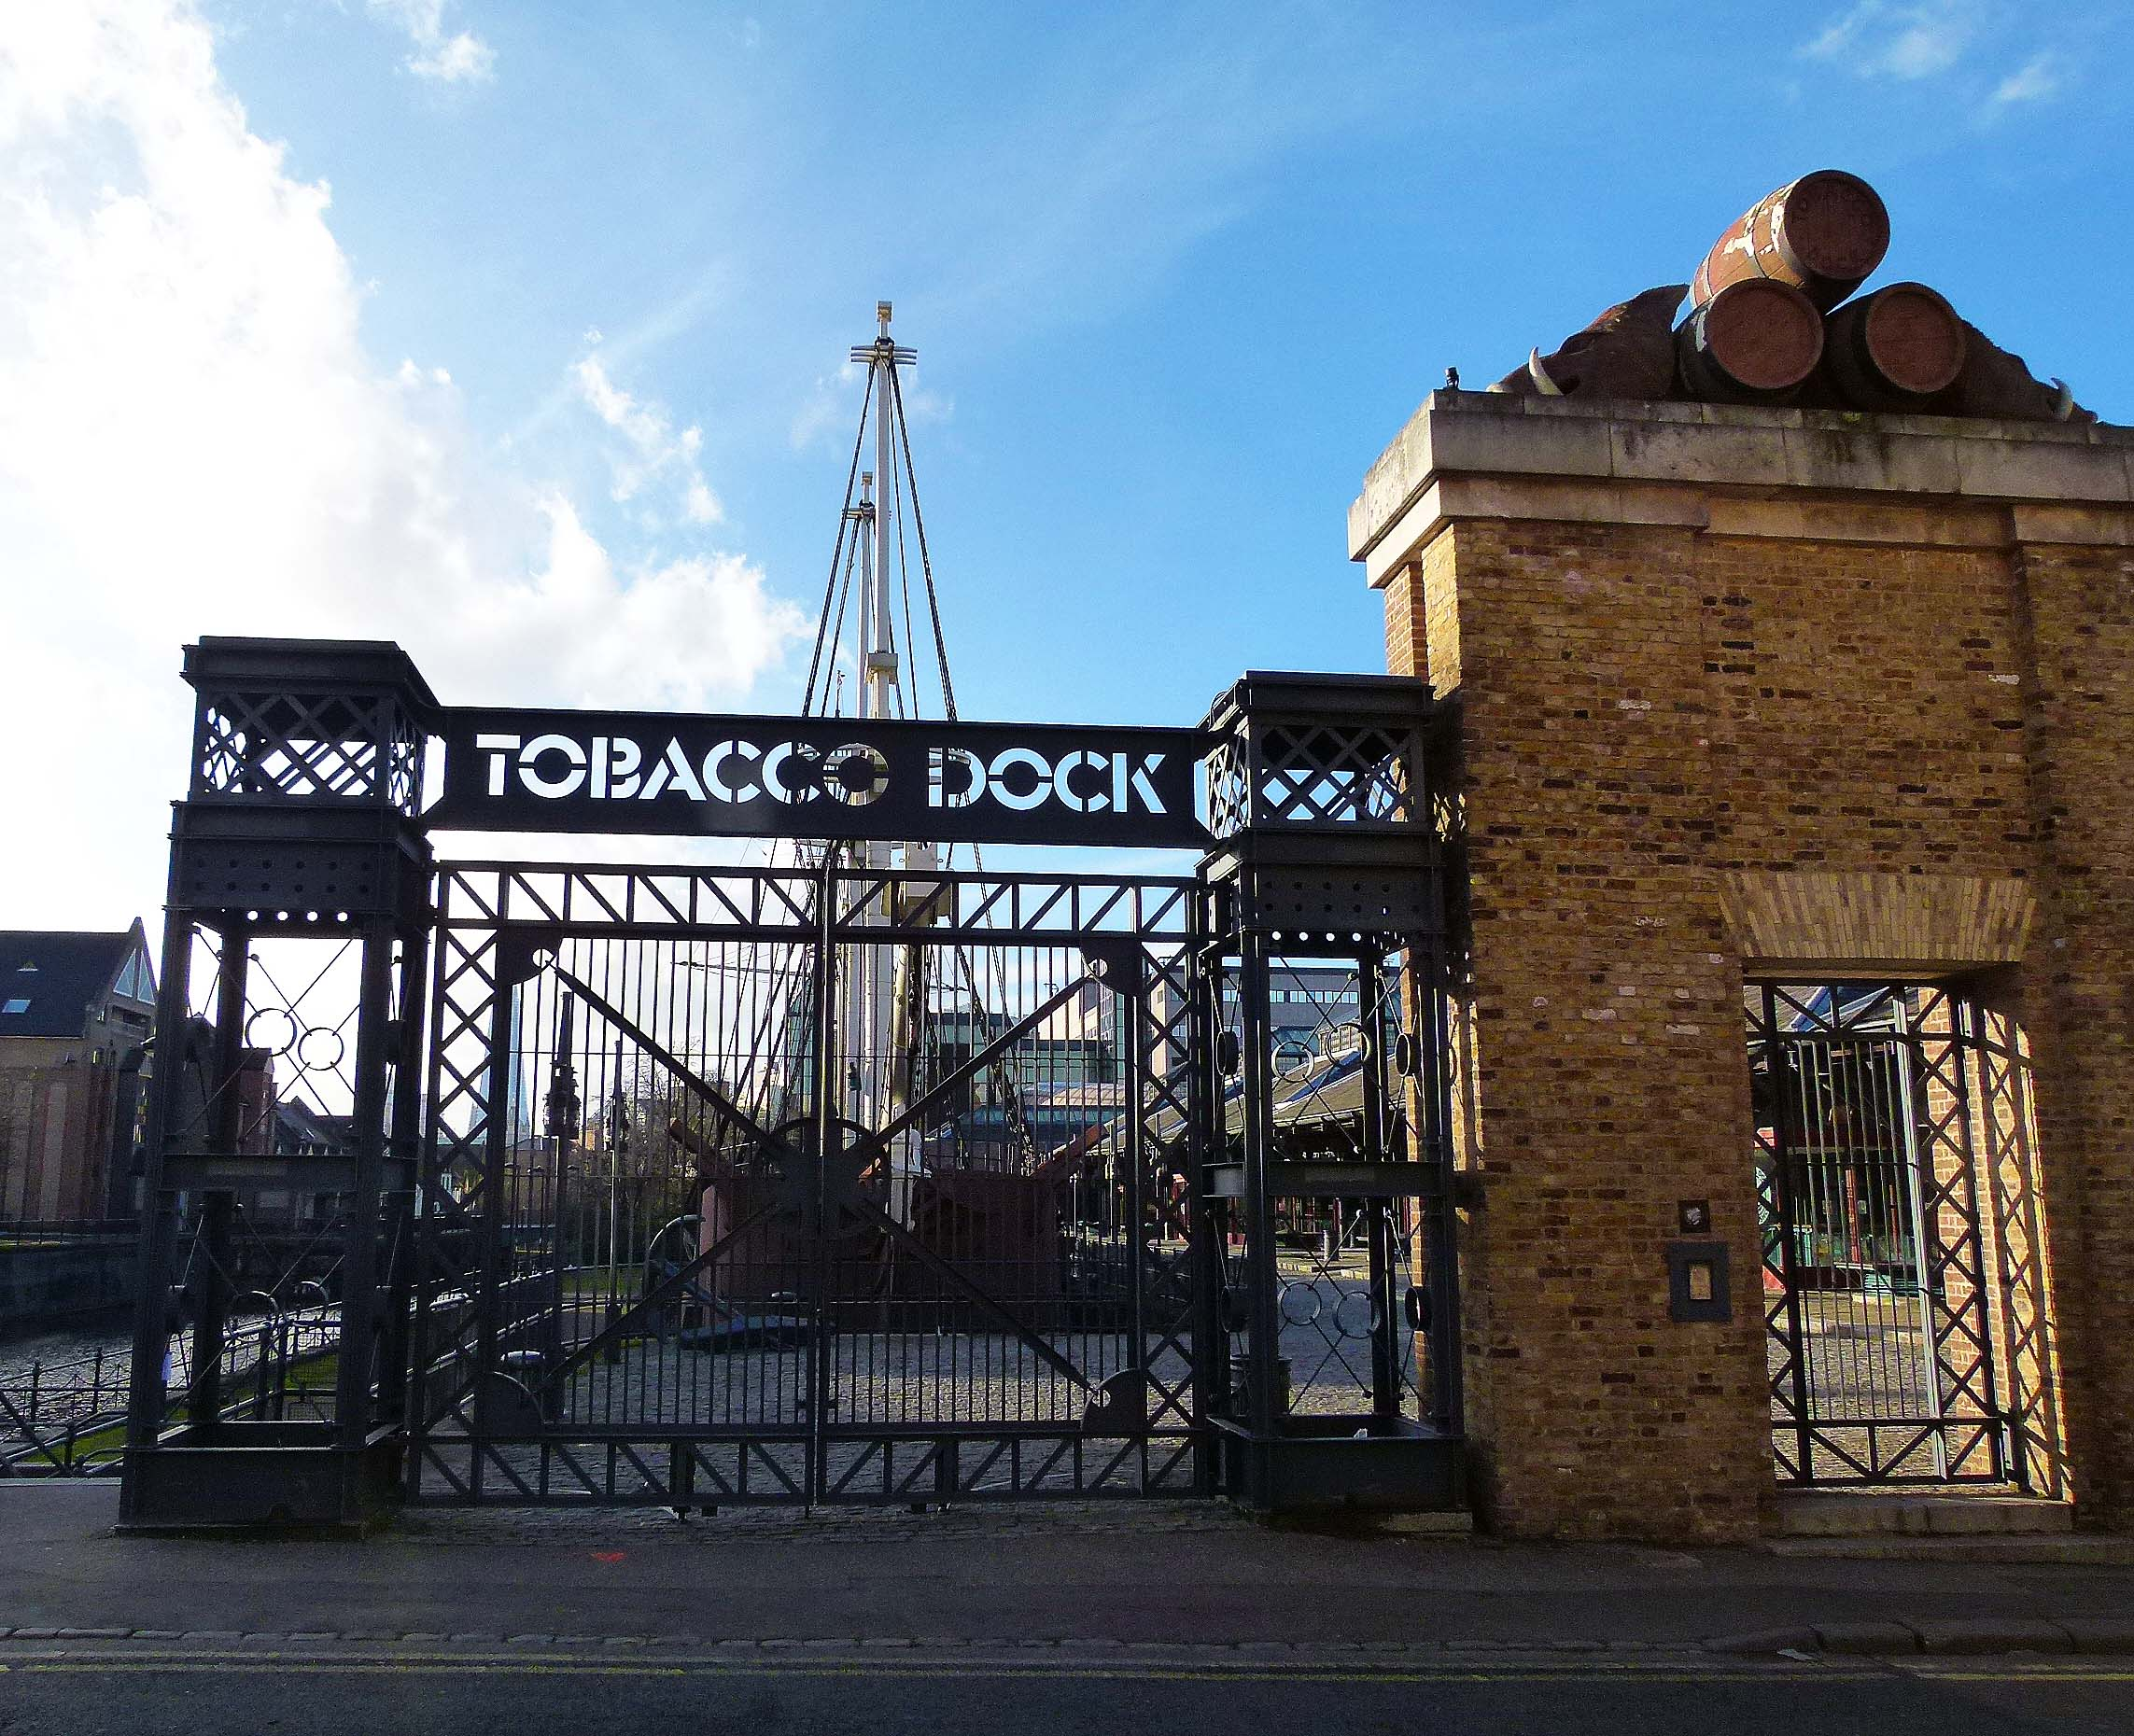 Image Result For Tobacco Dock London